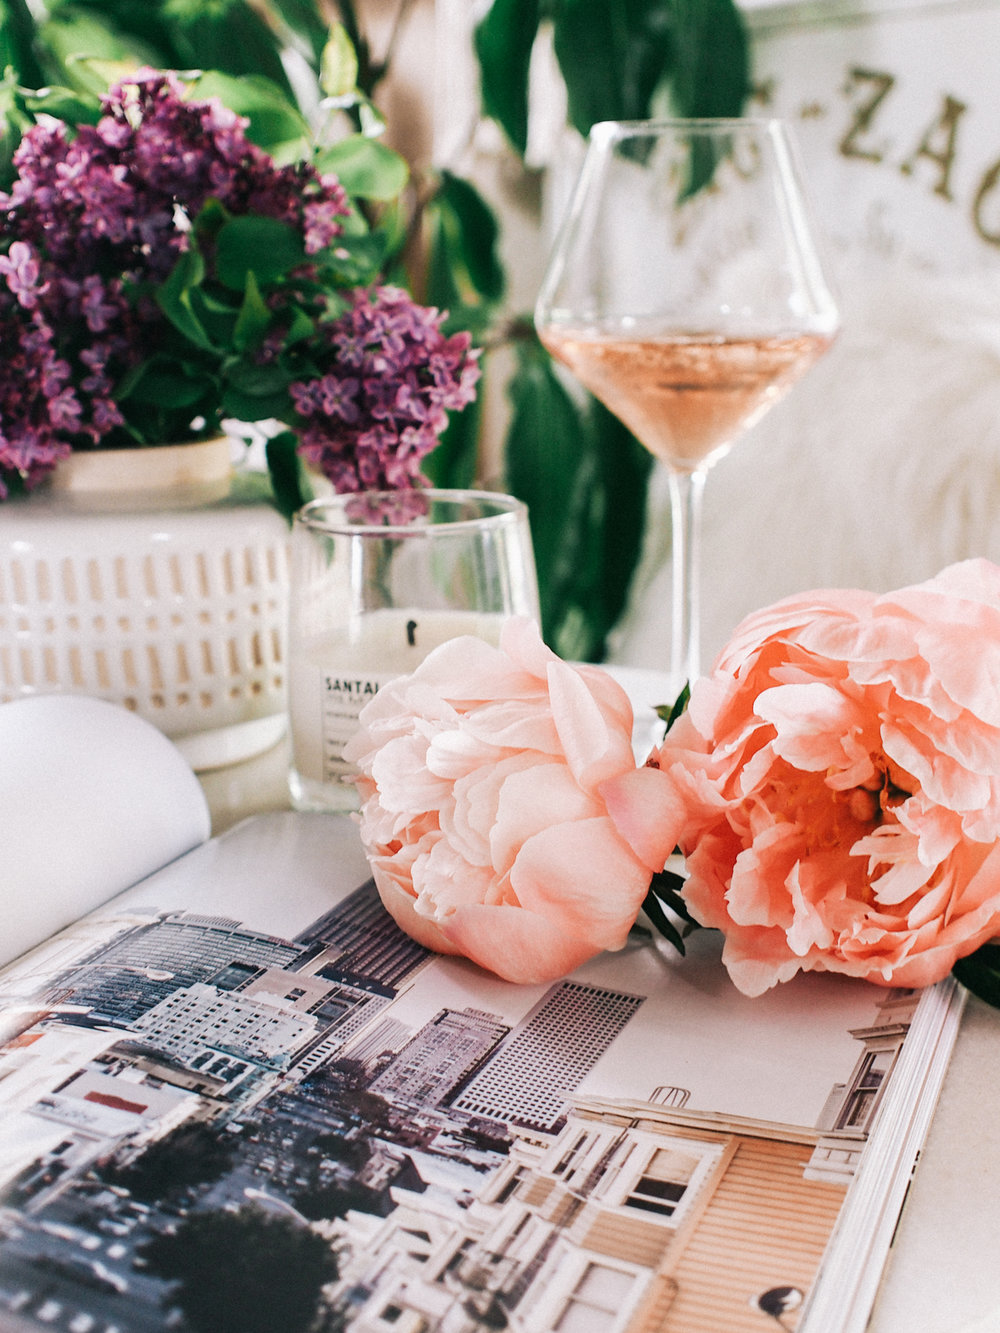 How-to-style-an-entry-table-4.jpg